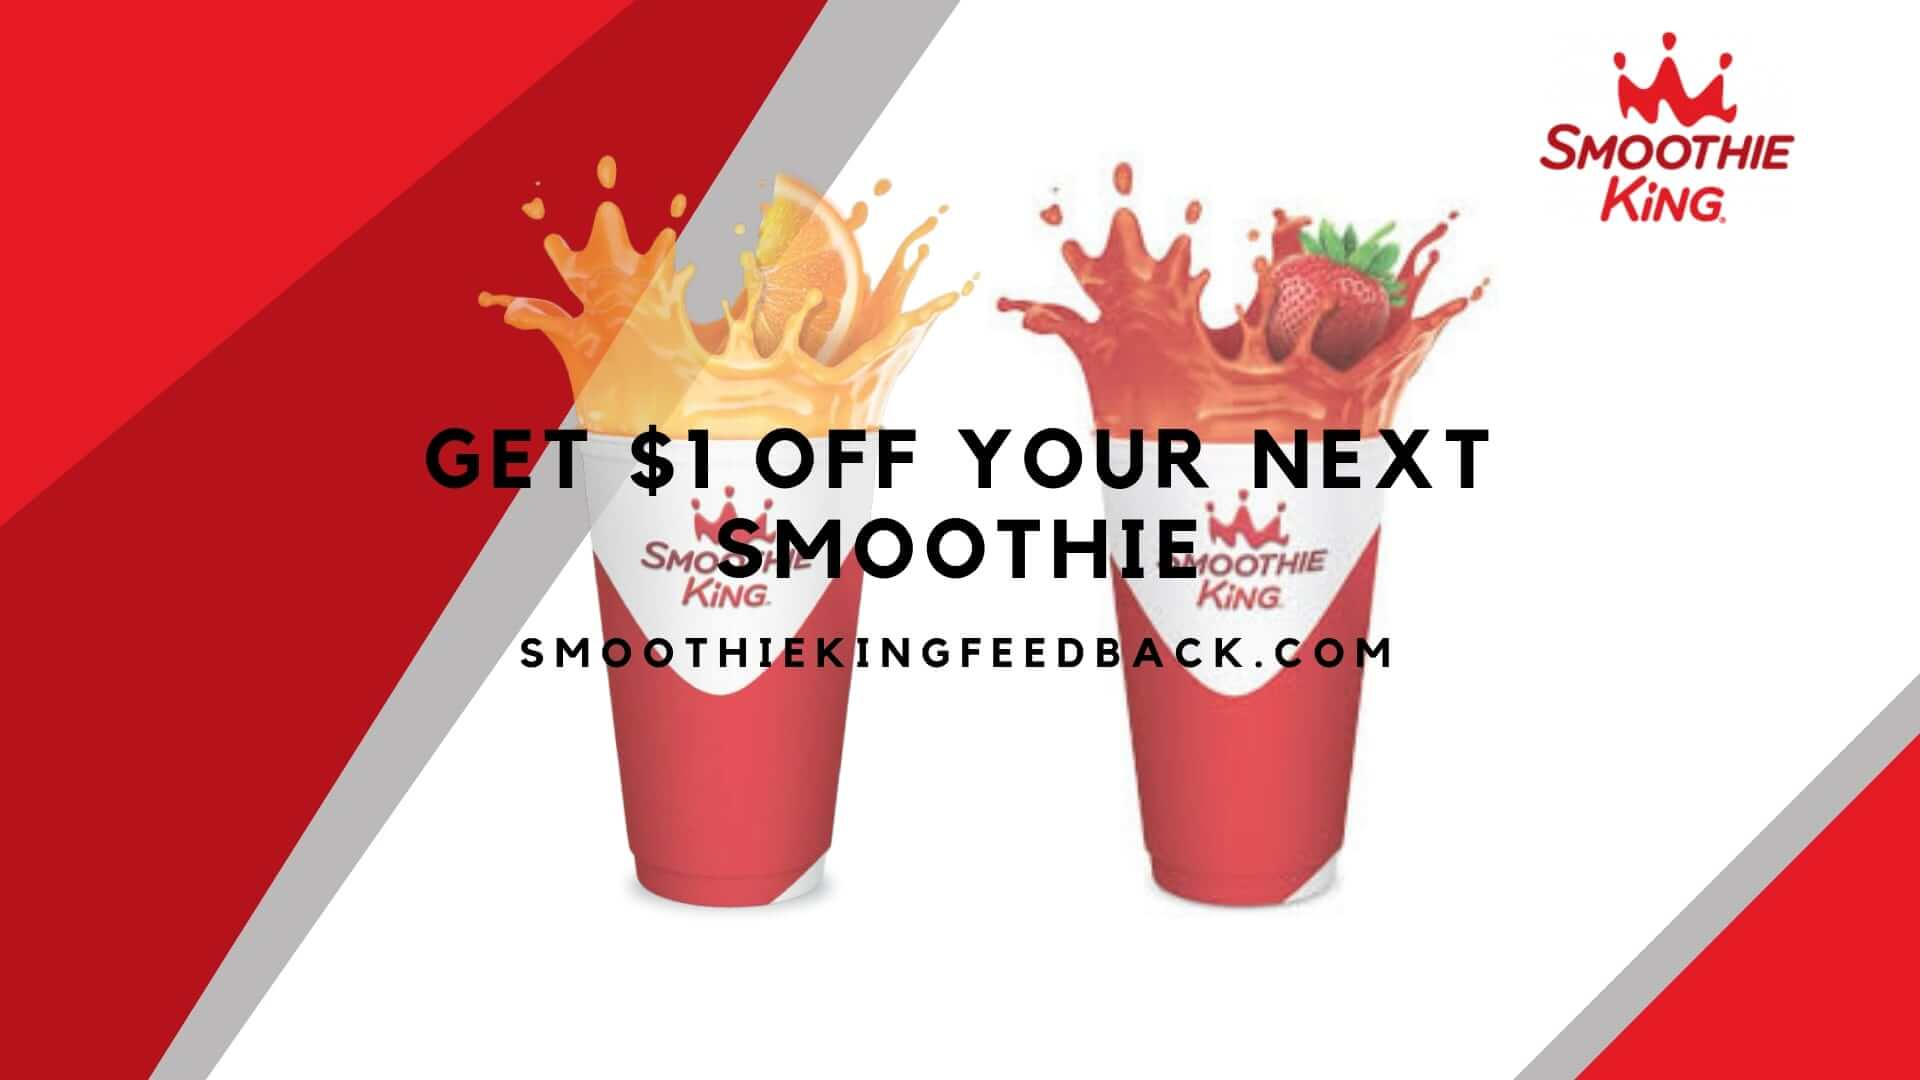 Smoothie King Feedback | Win Smoothie King Coupons